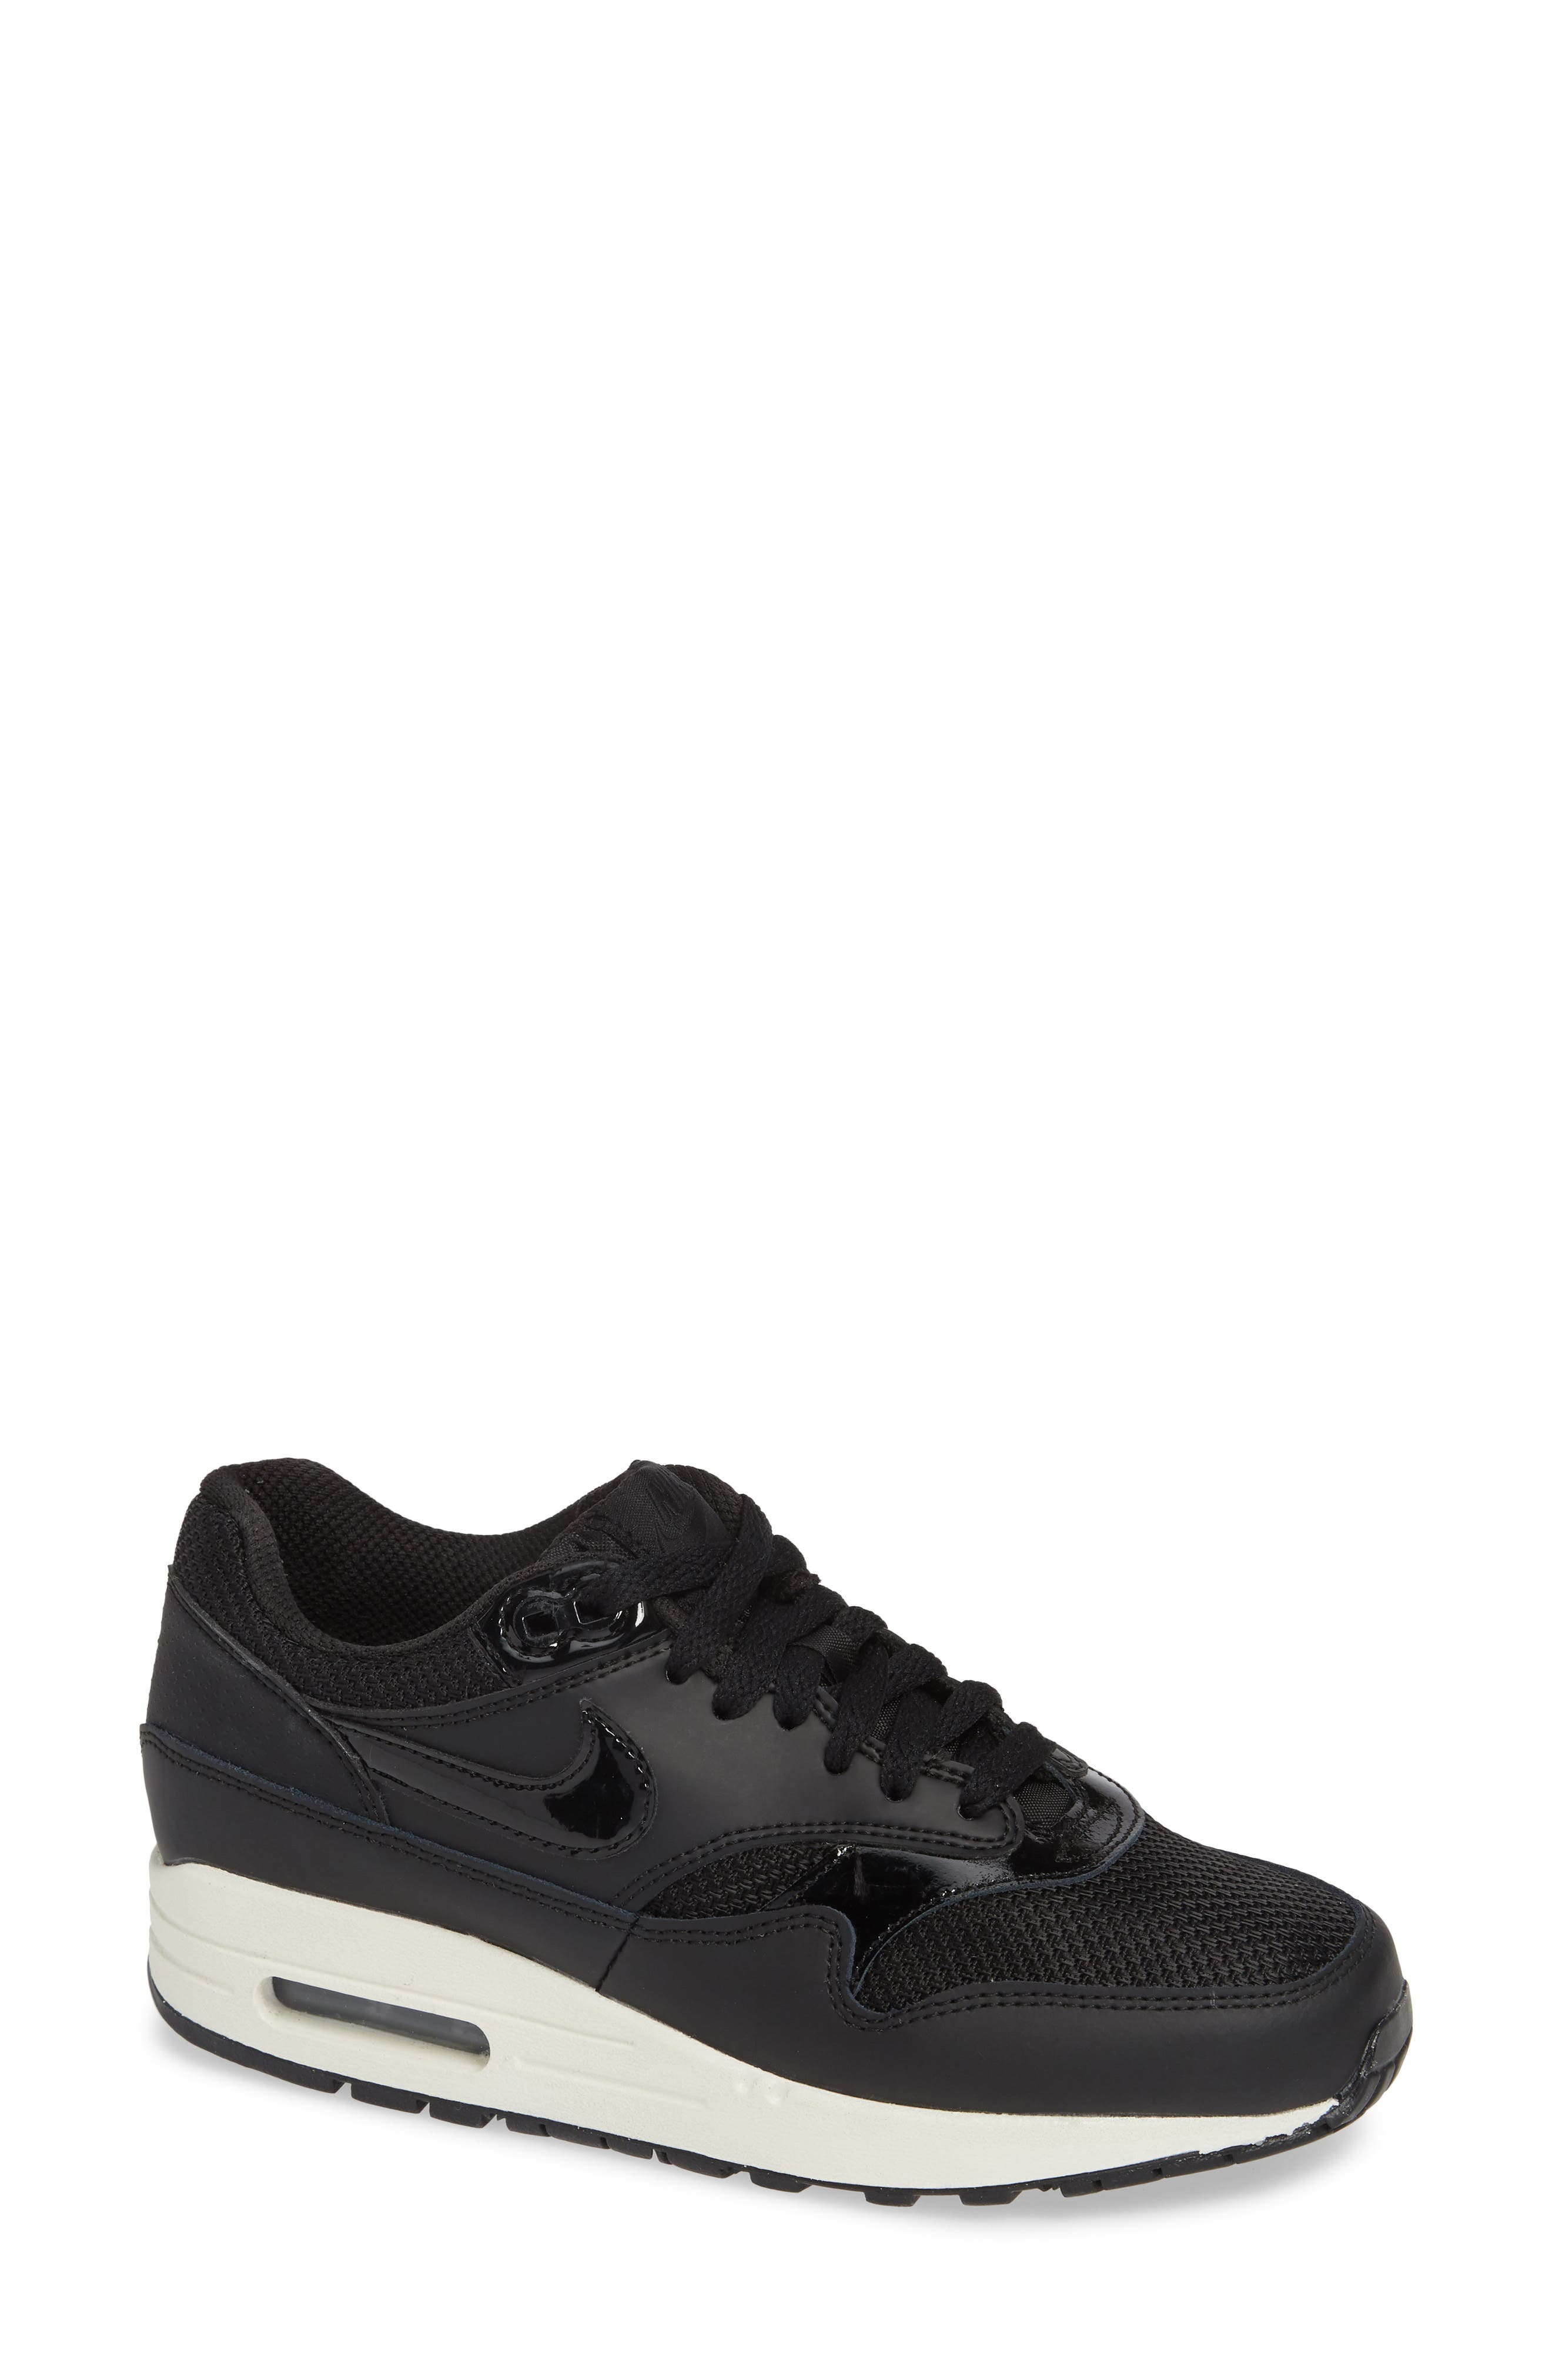 NIKE, Air Max 1 ND Sneaker, Main thumbnail 1, color, BLACK/ BLACK-BLACK- WHITE